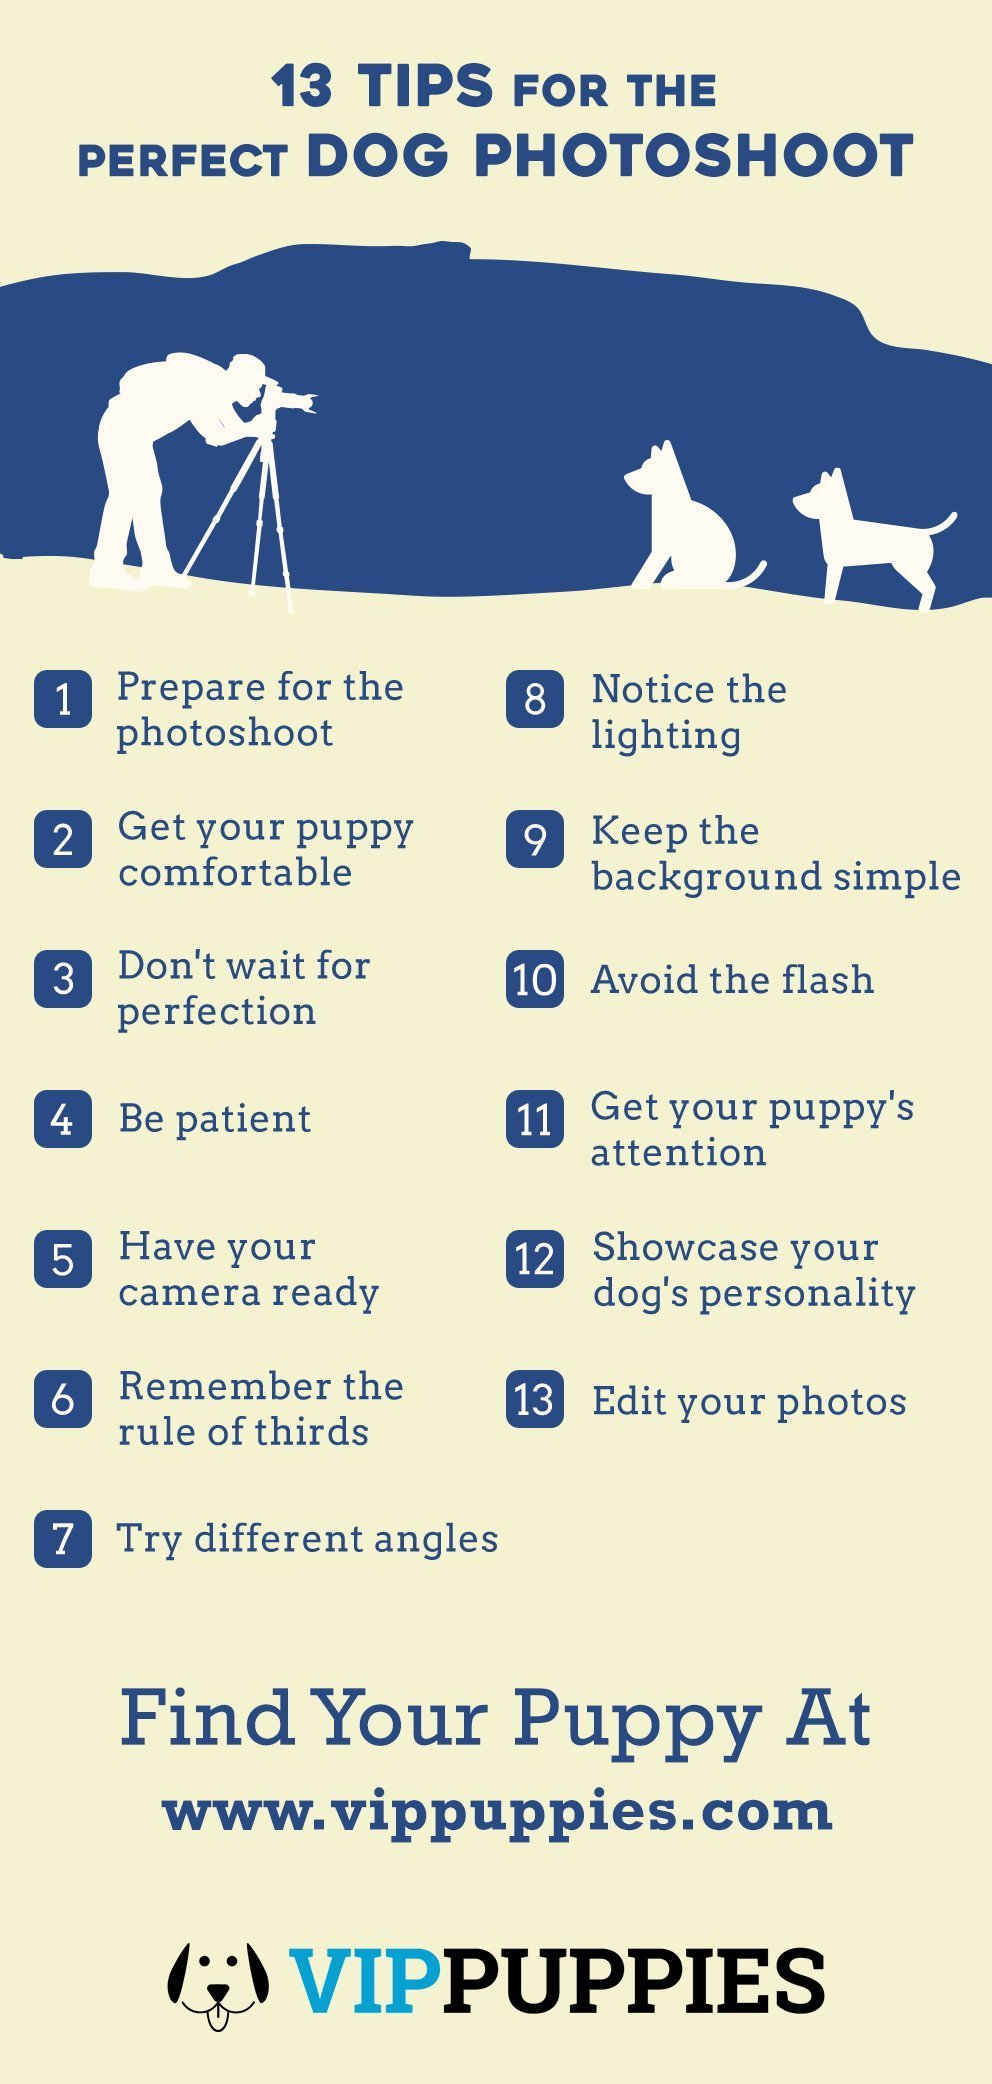 13 Tips for the Perfect Dog Photoshoot